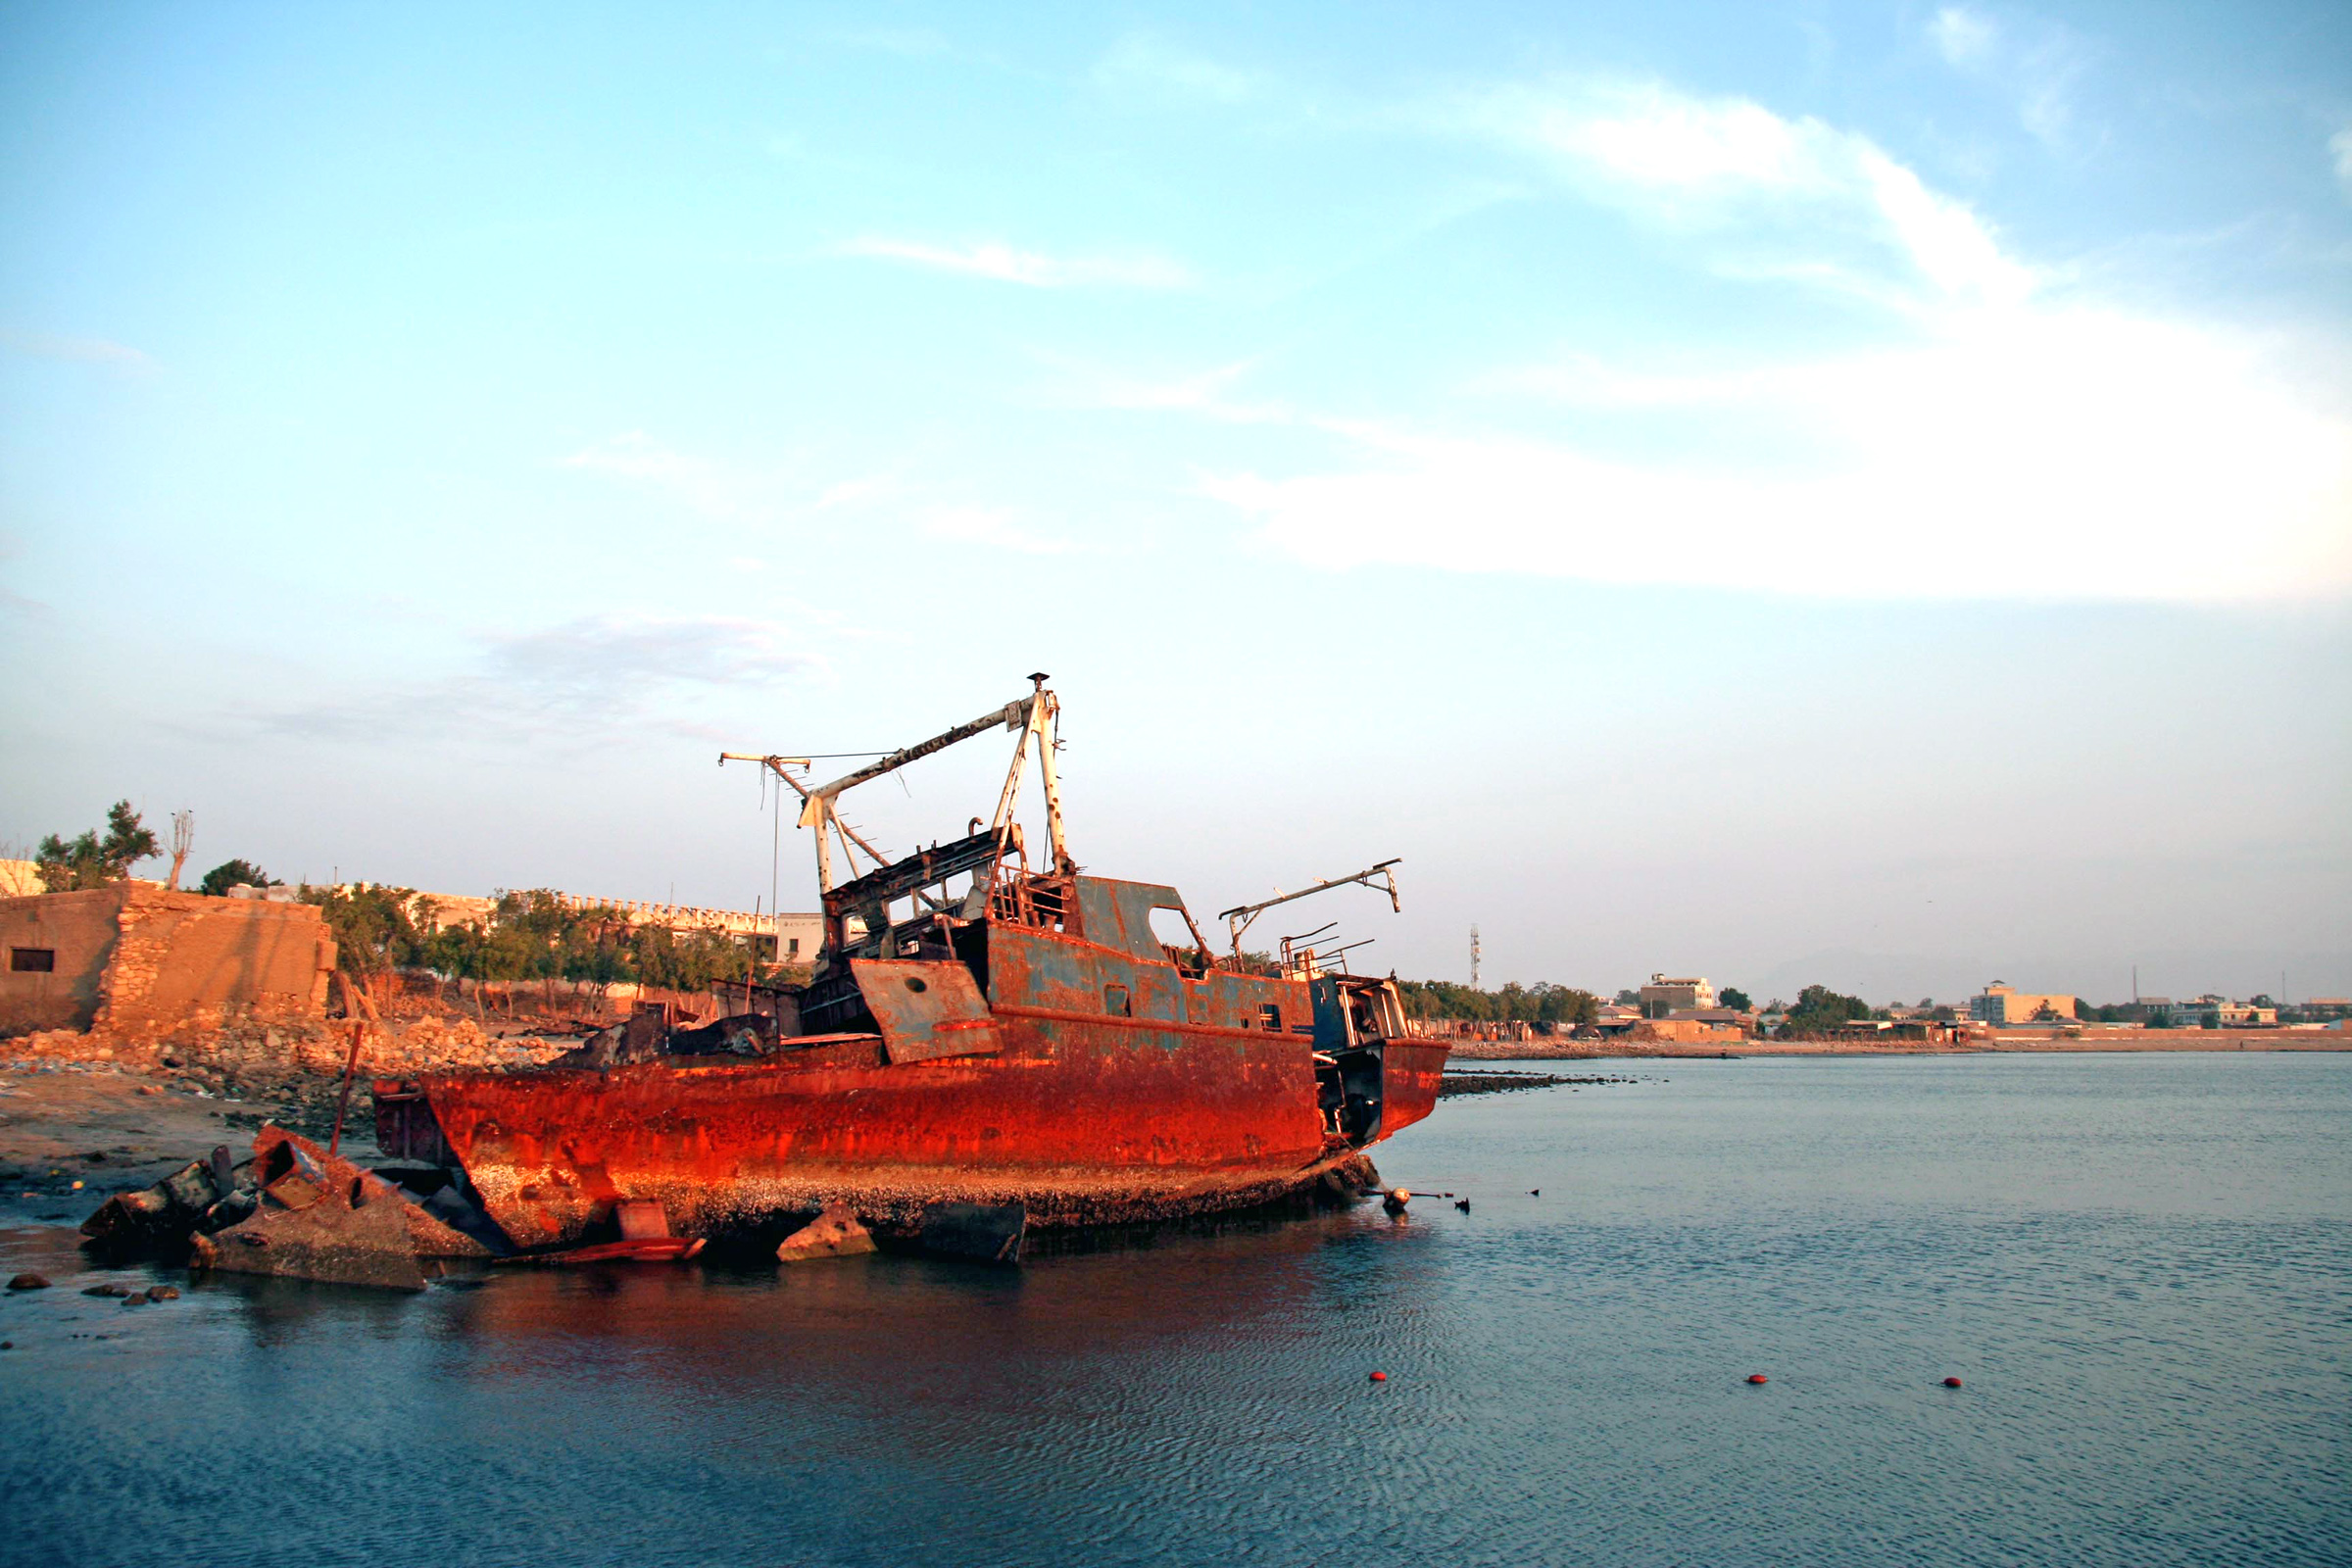 Rusting hulks of capsized vessels decorate the waters around Berbera, a port city in the breakaway region of Somaliland